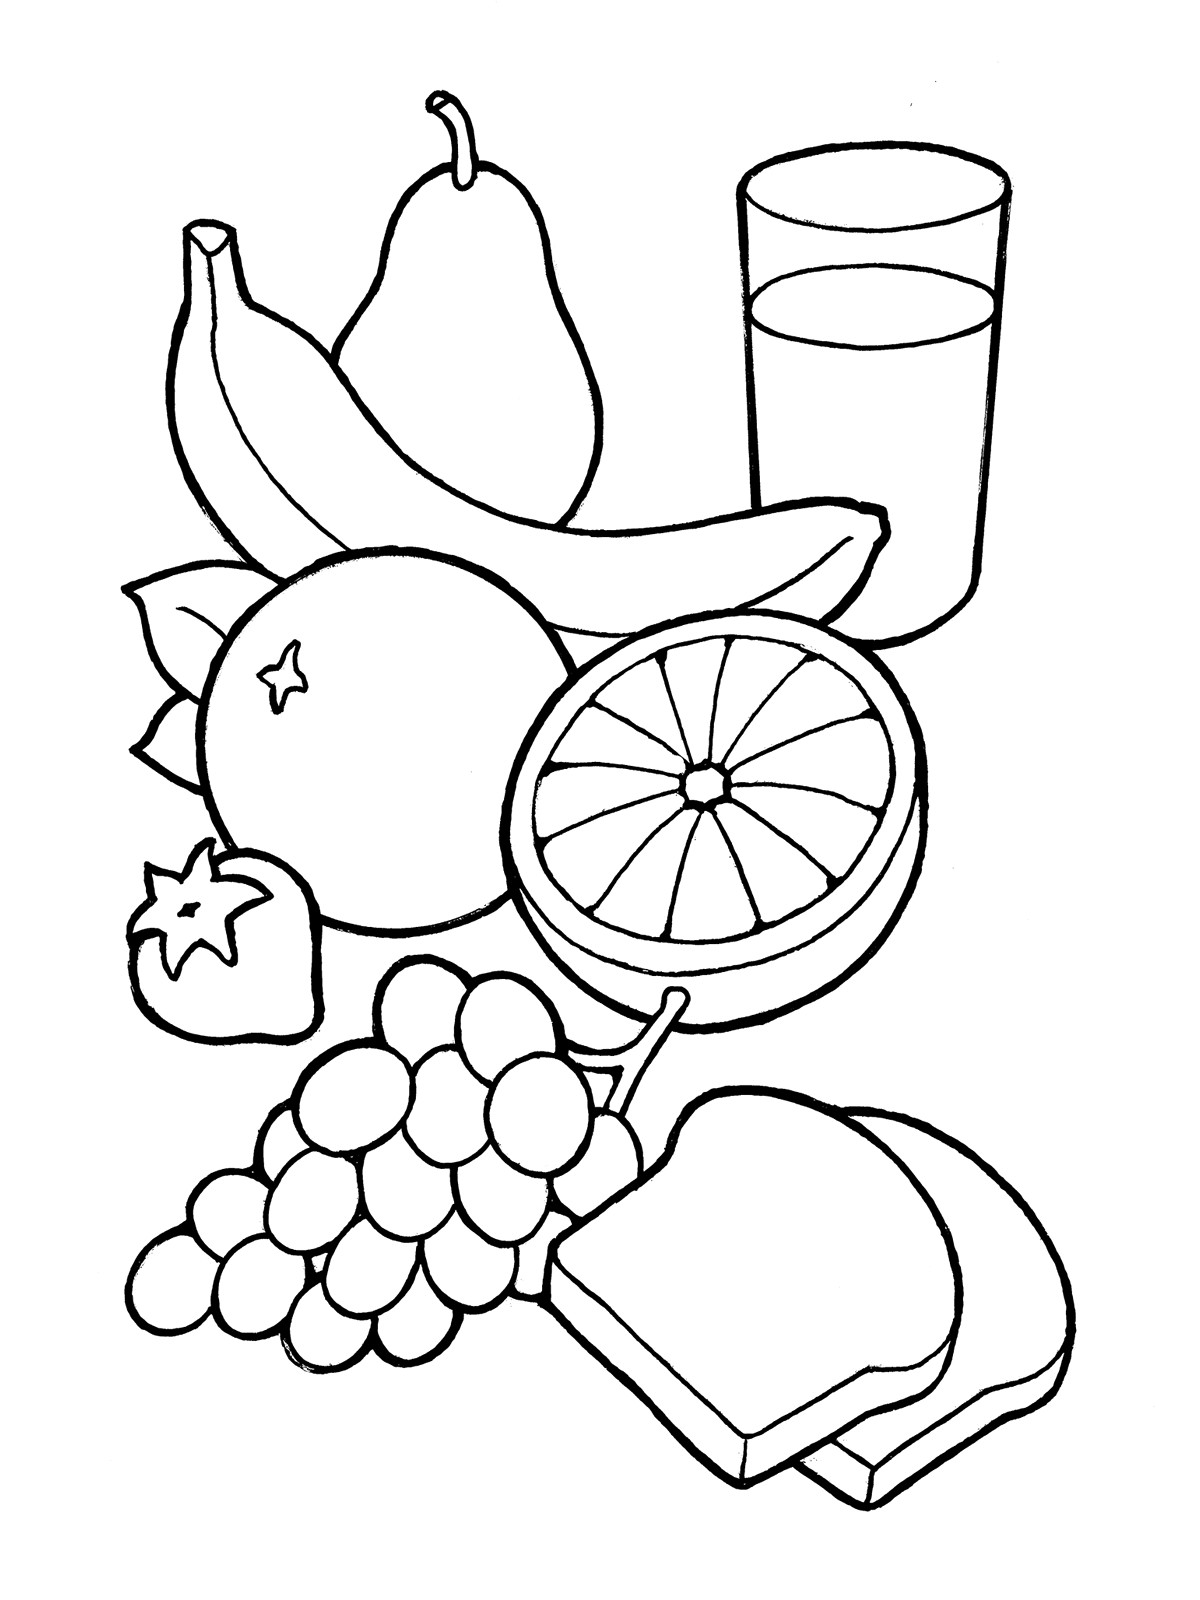 Healthy Foods Clipart Black And White 6 Clipart Station